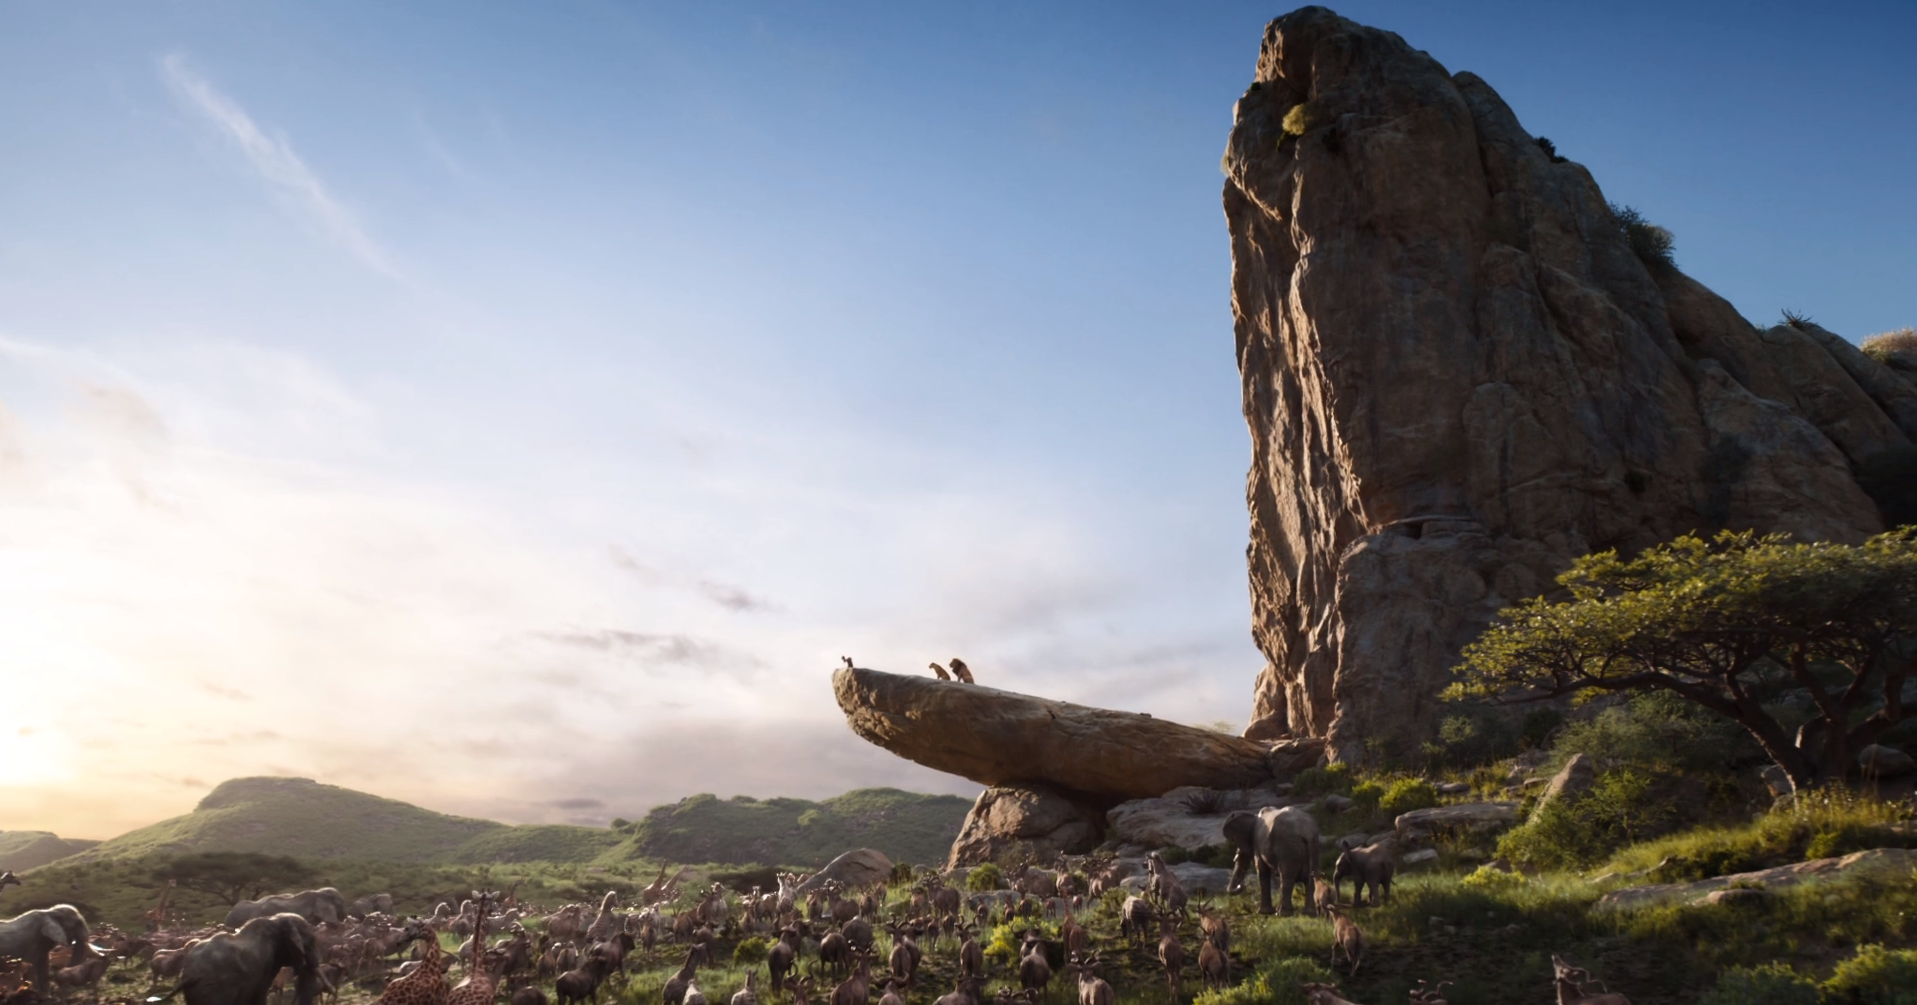 Pride Rock The Lion King 2019 Film Wiki Fandom Powered